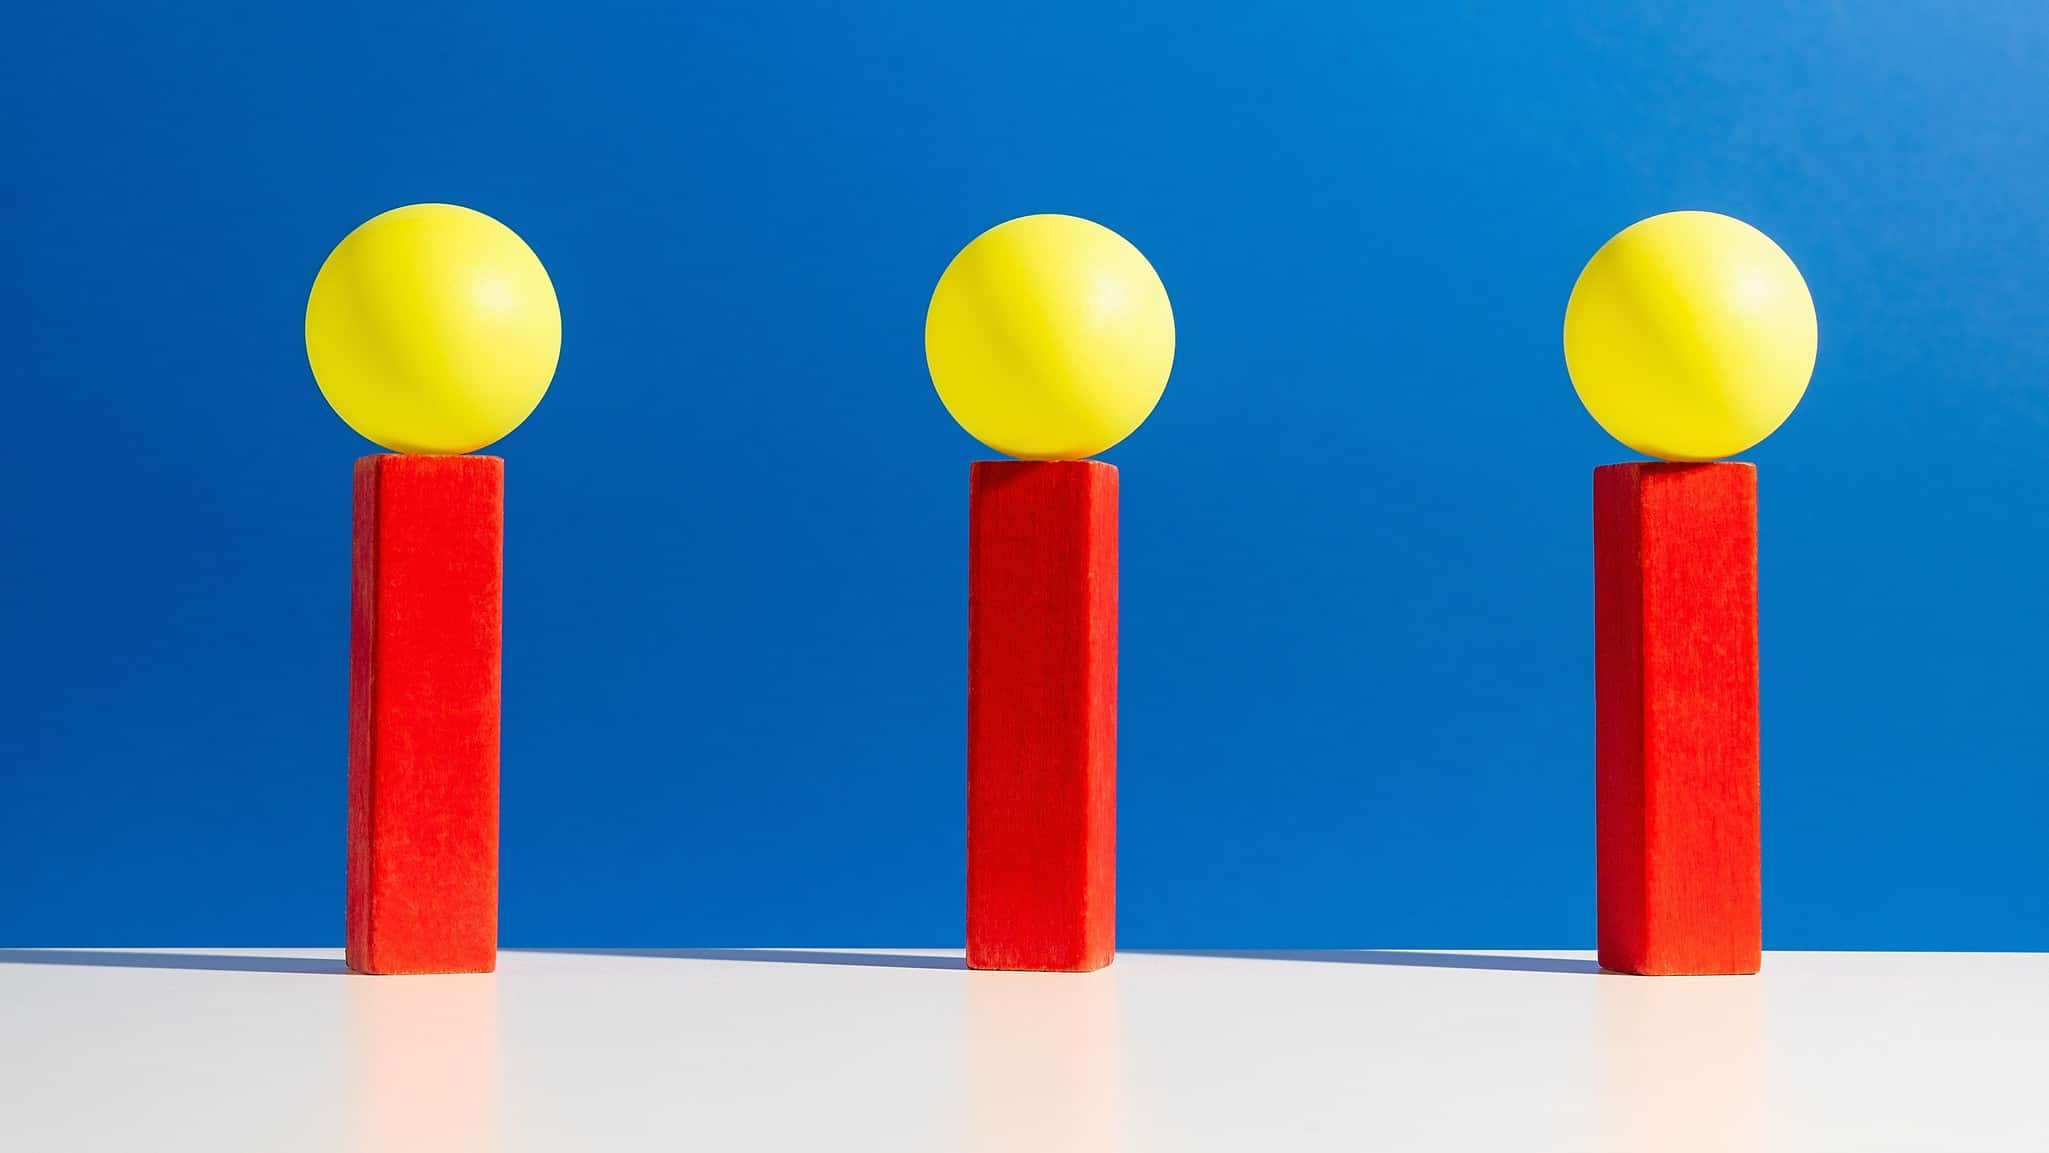 Three brightly coloured objects against a backdrop of blue, indication three winning ASX share prices